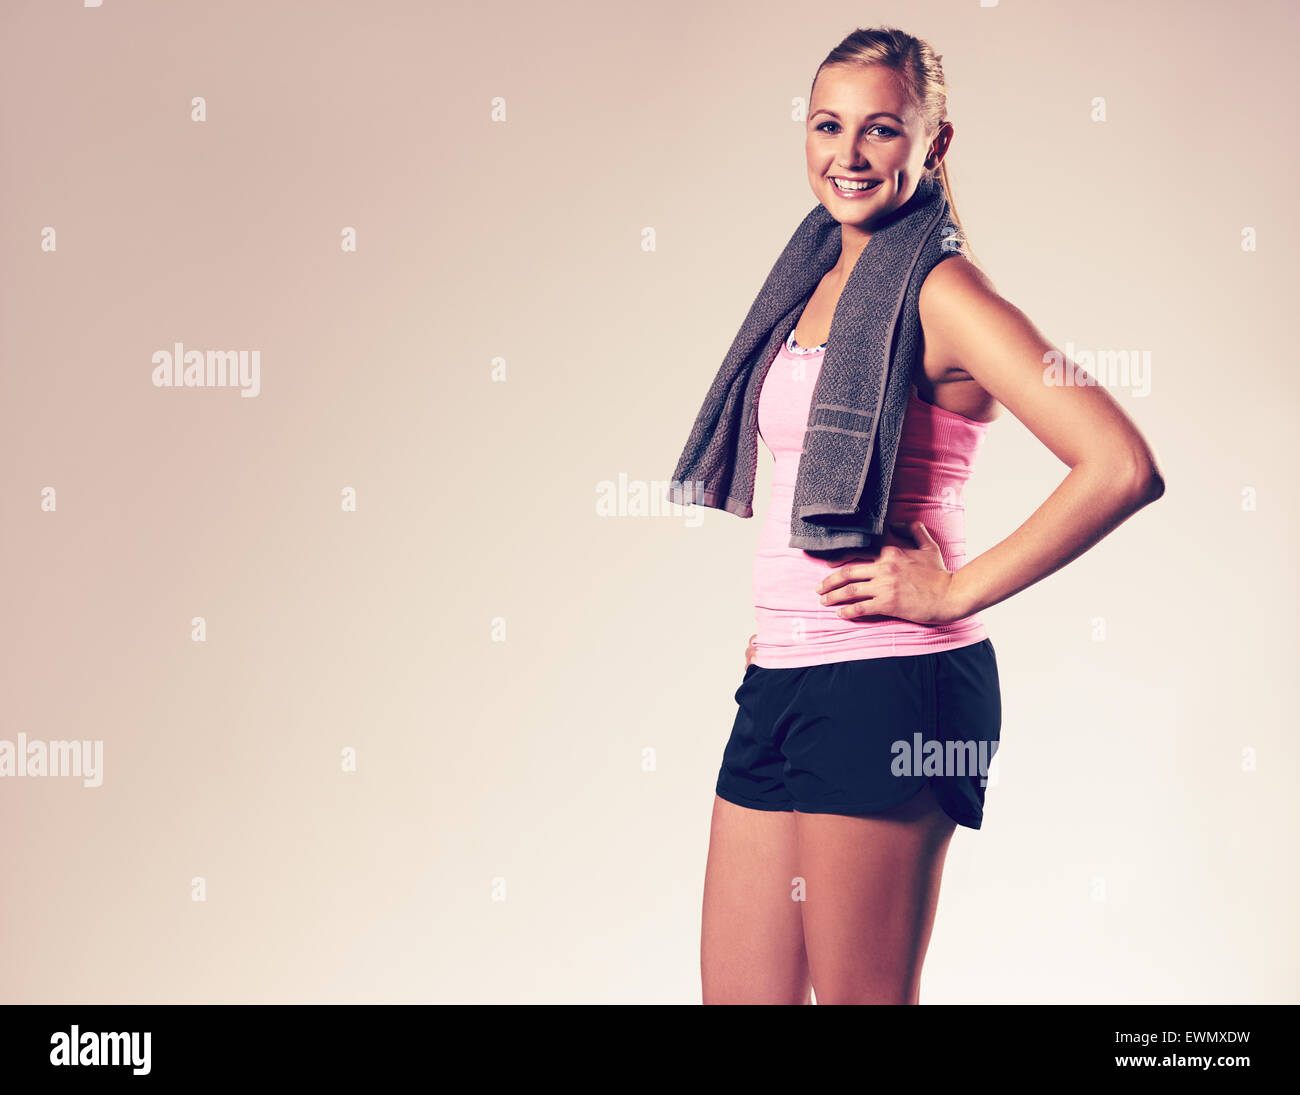 Young woman wearing workout clothes posing with hand on hip and smiling at camera. - Stock Image